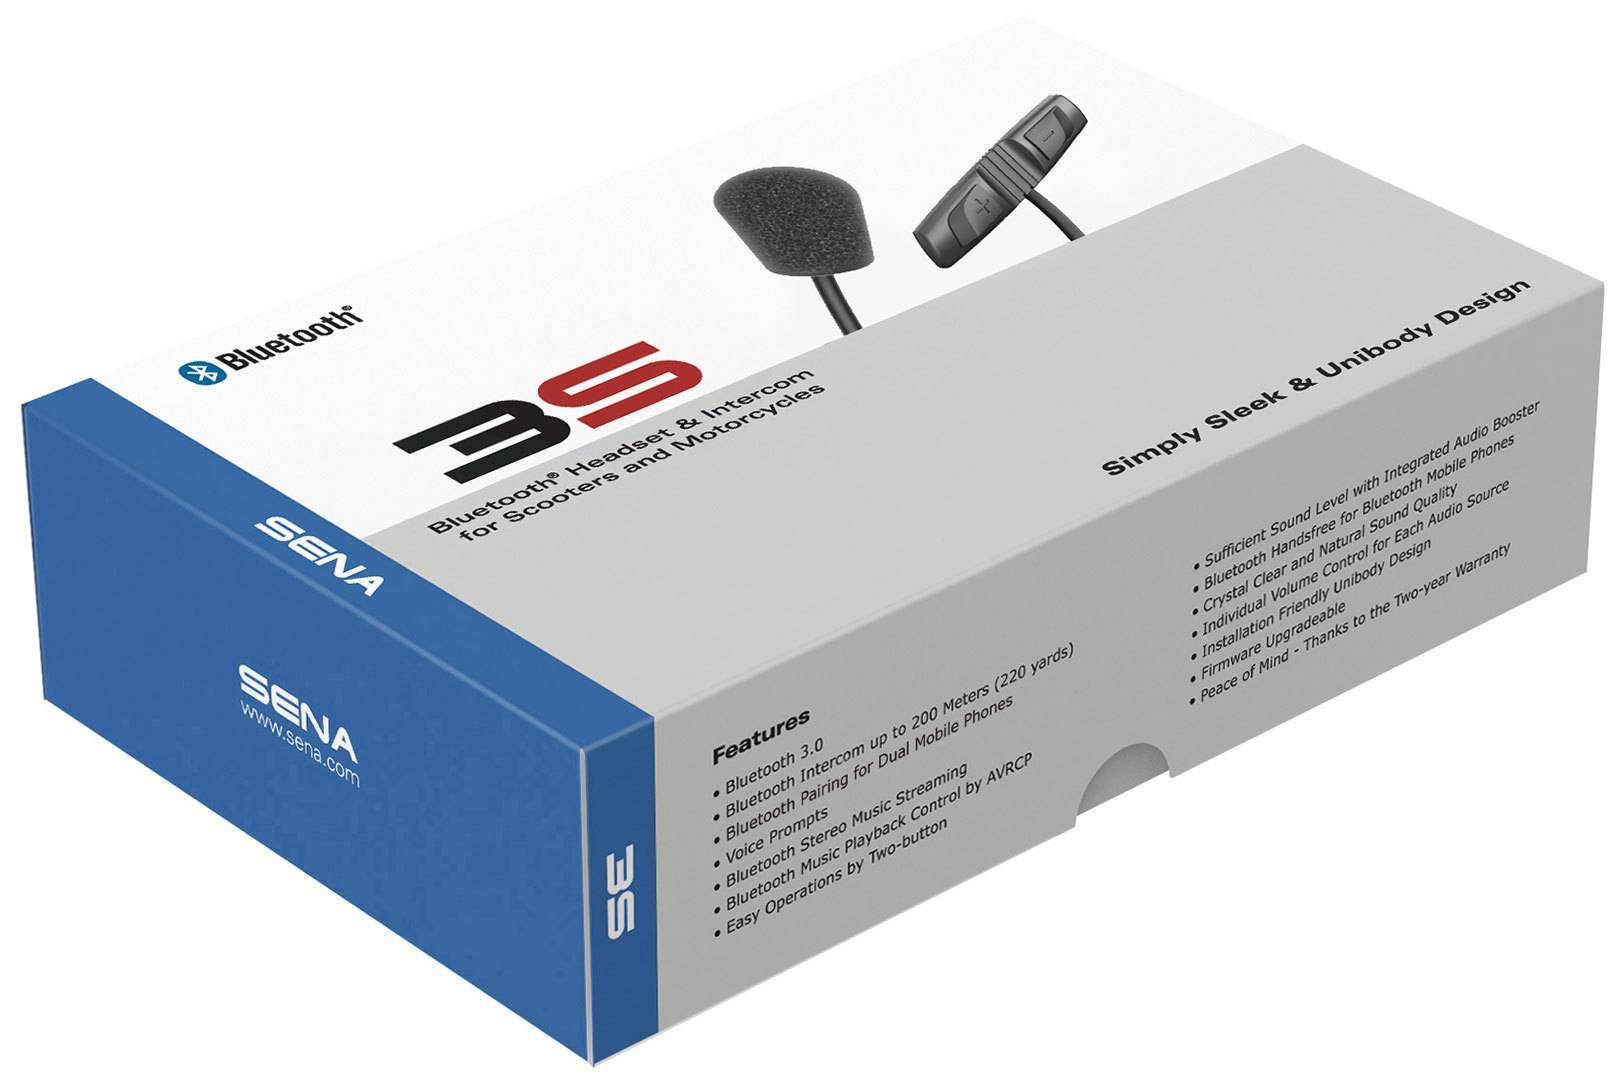 Sena 3S-WB Bluetooth Communication System Headset Casque de système de Communication Bluetooth Noir taille : unique taille